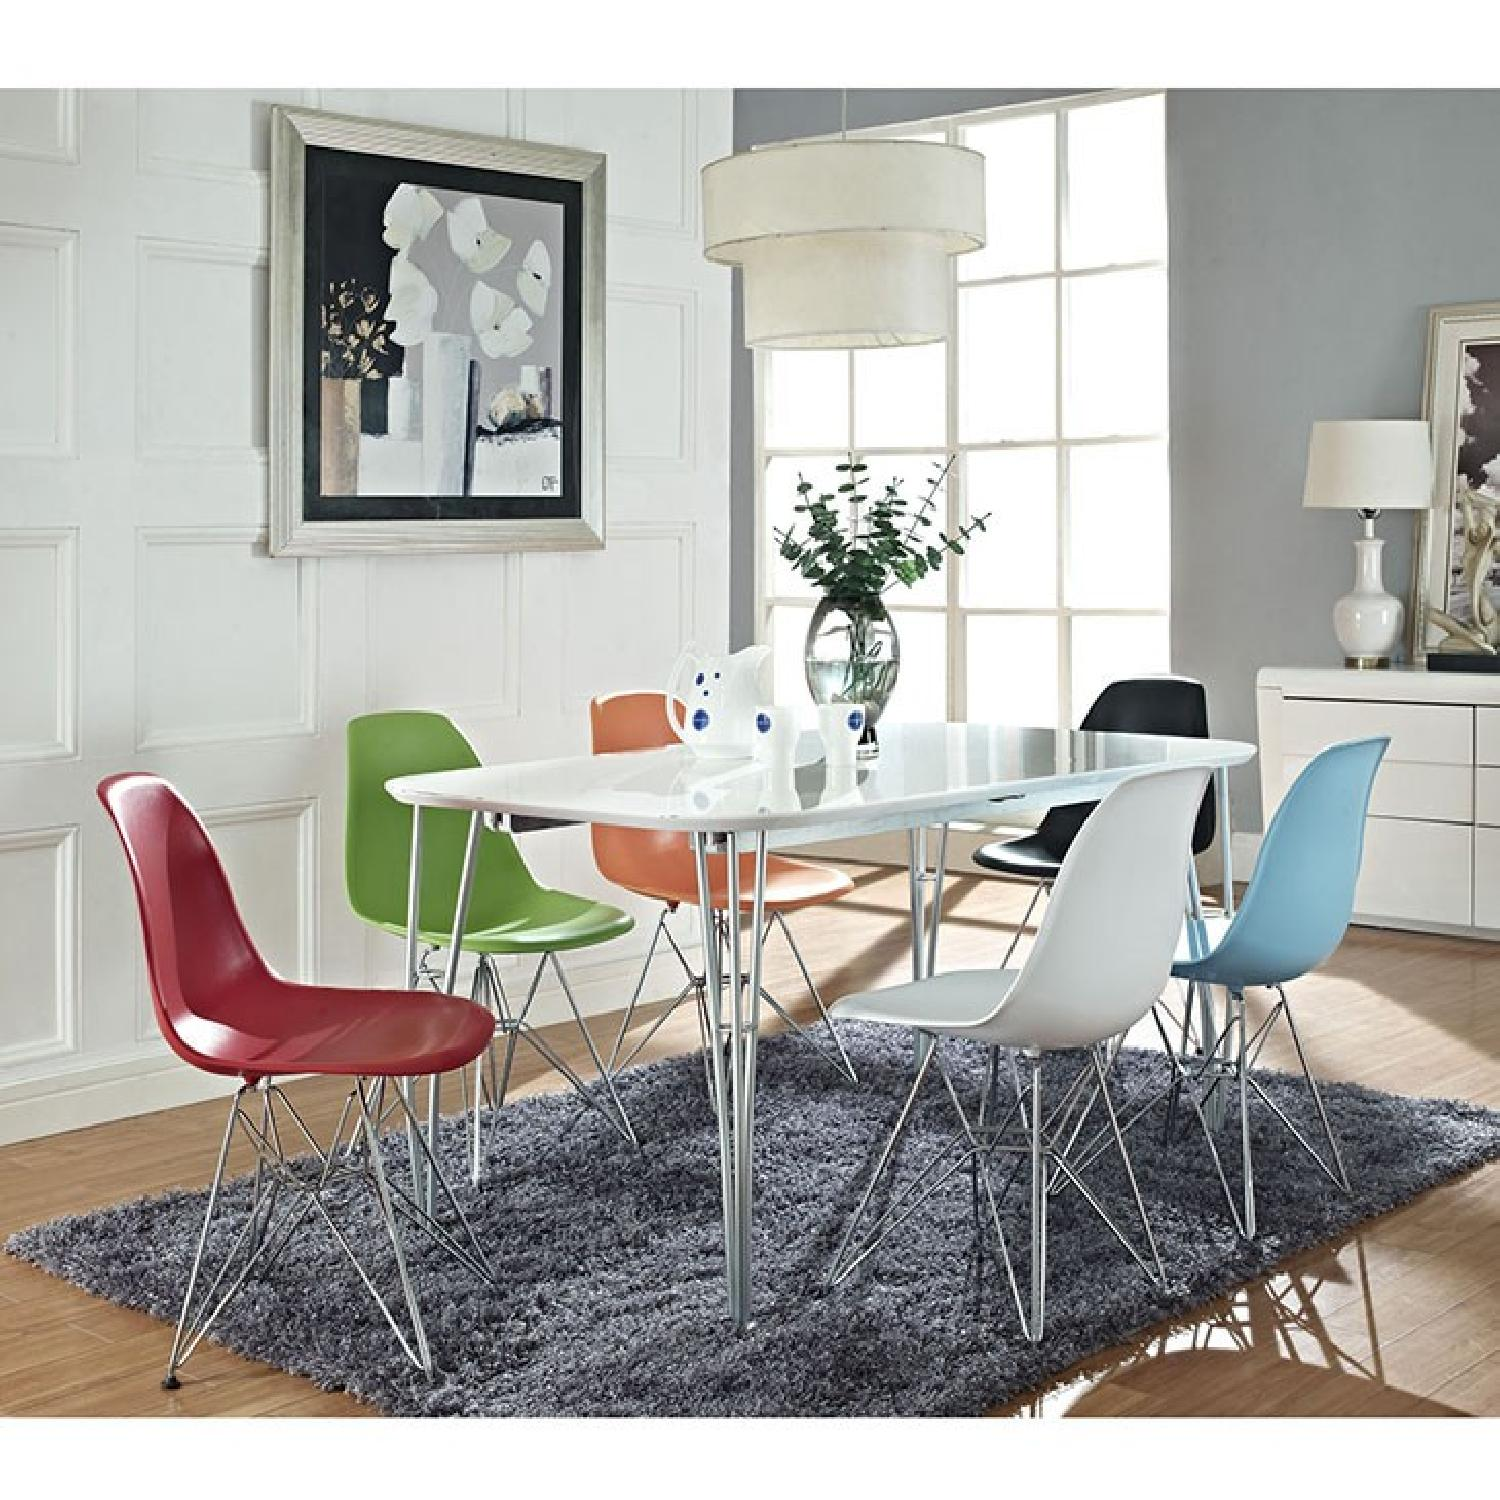 Lenny Dining Chair - image-3